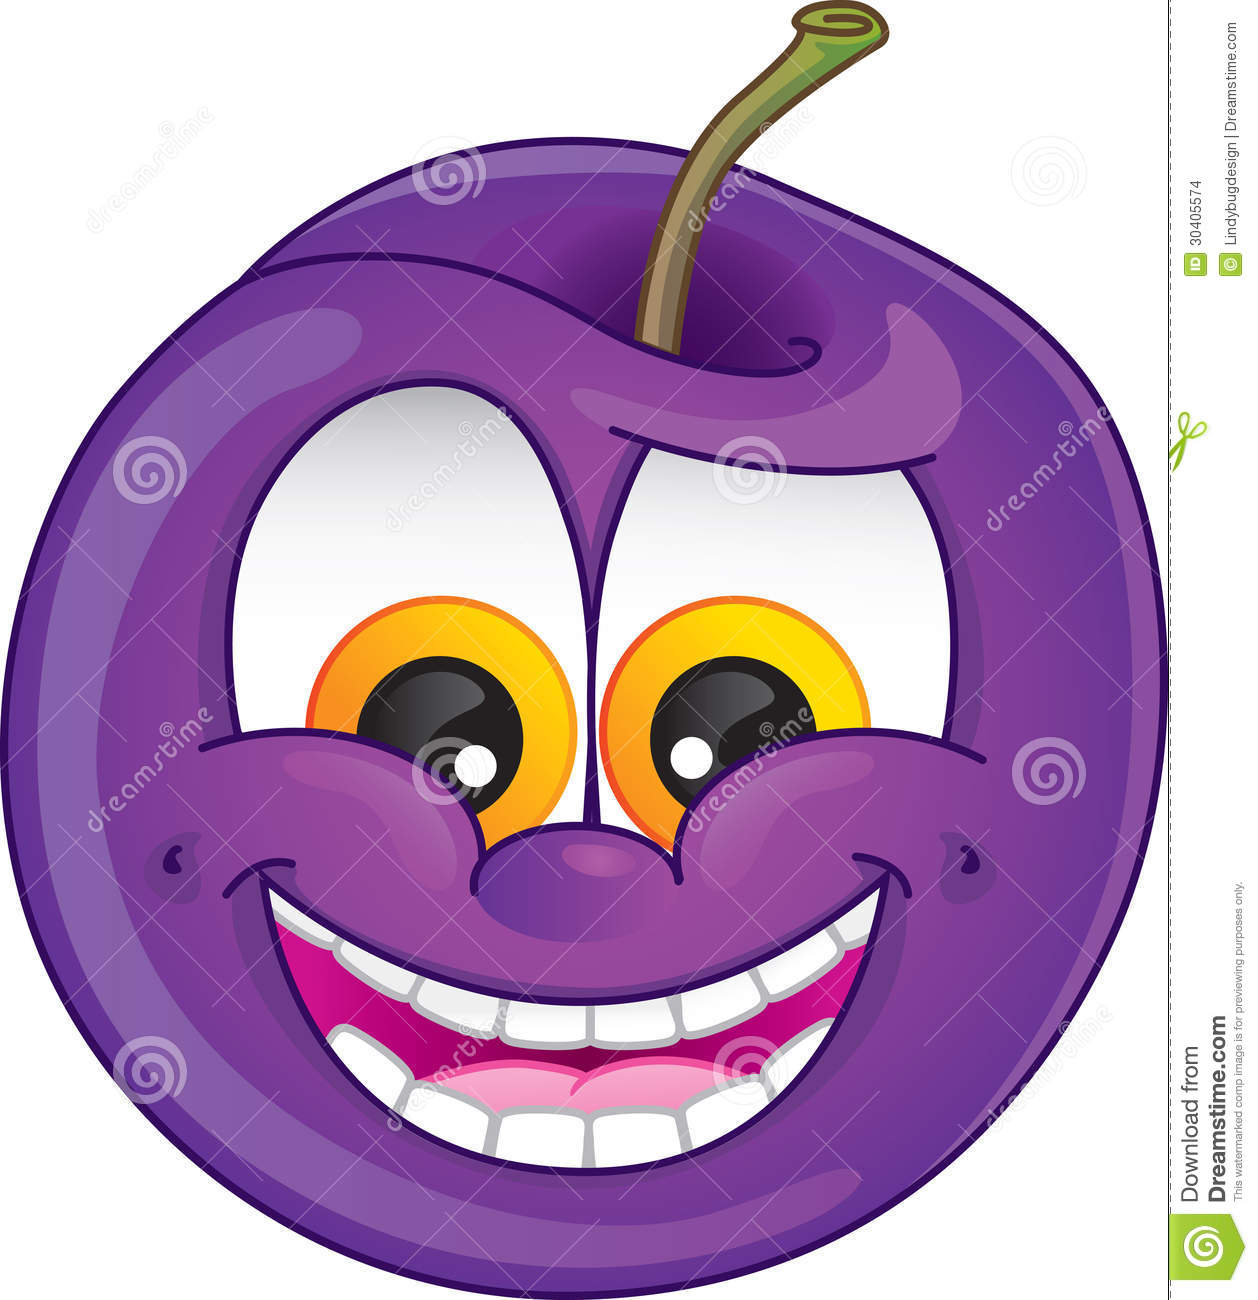 Cartoon Plum Stock Images.